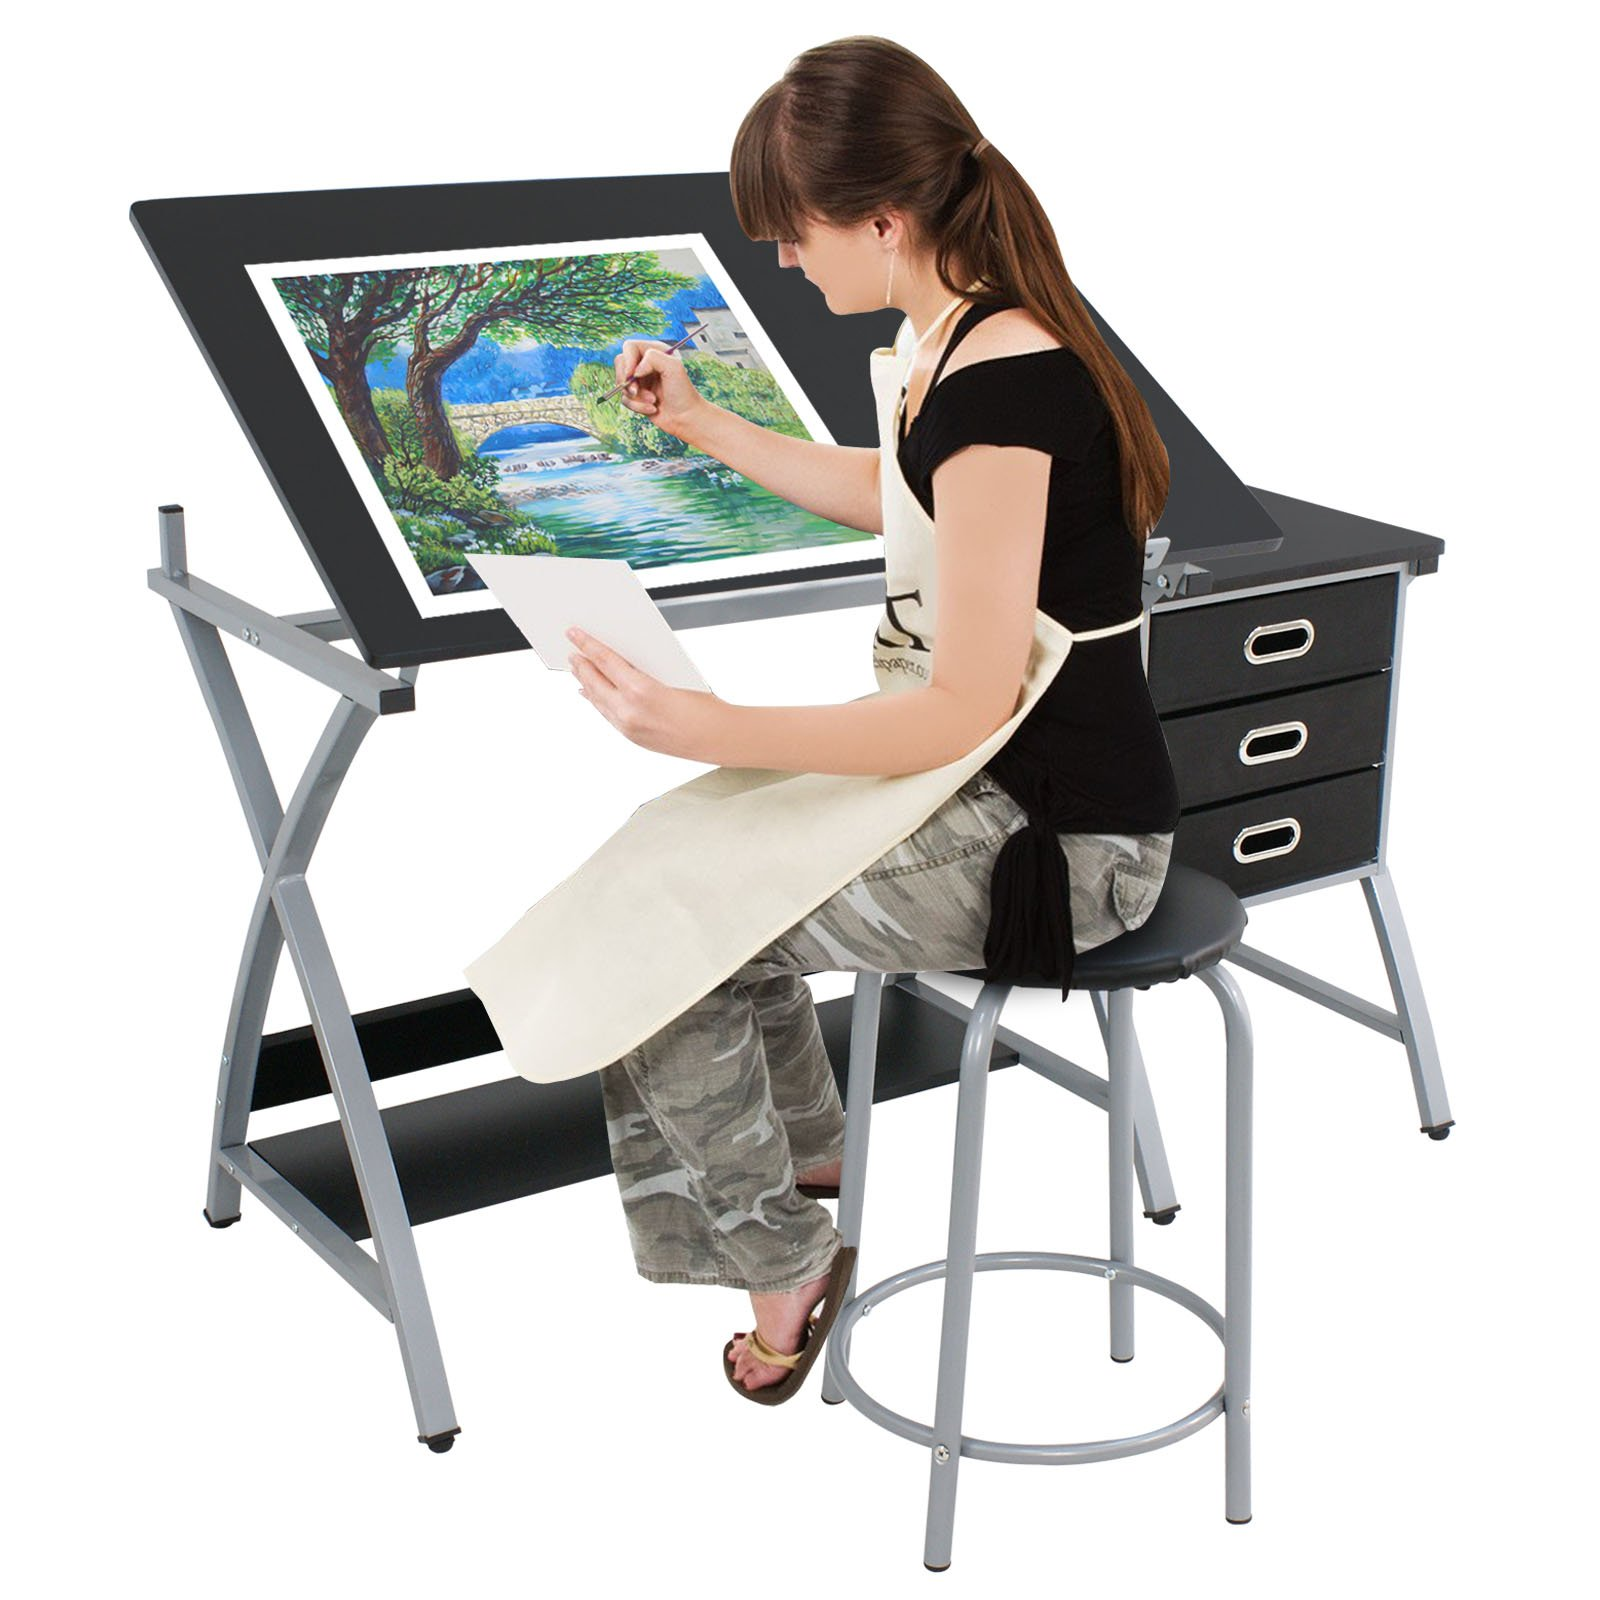 Super Deal Adjustable Drafting Table Art & Craft Drawing Desk Craft Station Art Hobby Folding w/Stool and Drawers